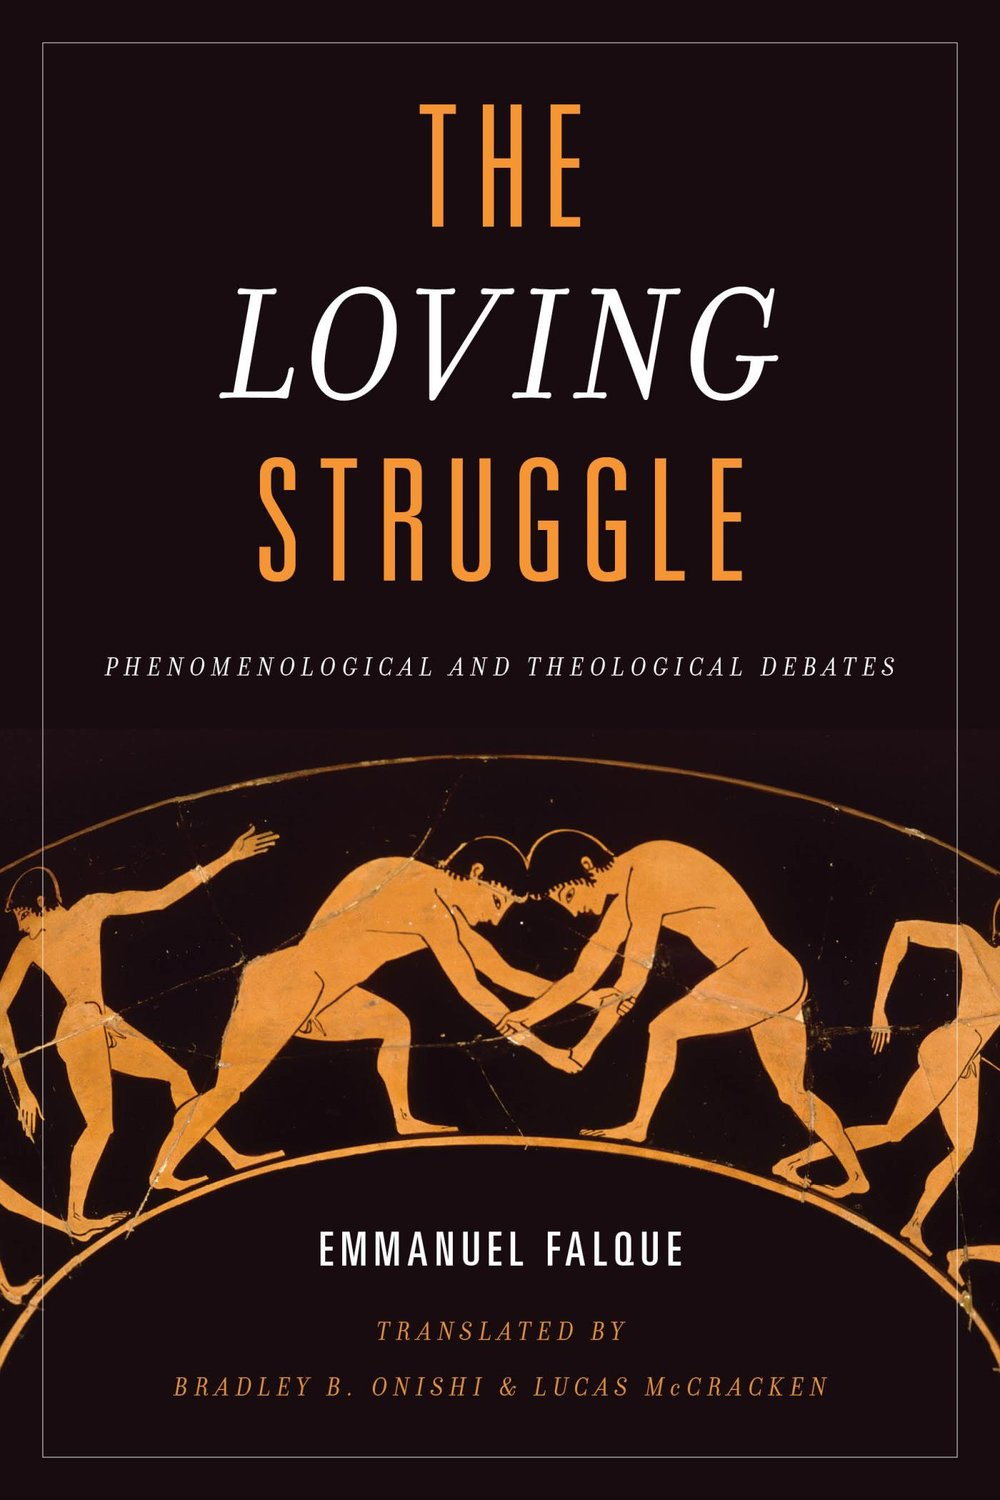 The Loving StrugglePhenomenological and Theological DebatesBy Emmanuel Falque, Bradley B. Onishi, and Lucas McCrackenPublication Date: Aug 2018 Pages 240 - Click here for publisher websiteClick here to order from Amazon